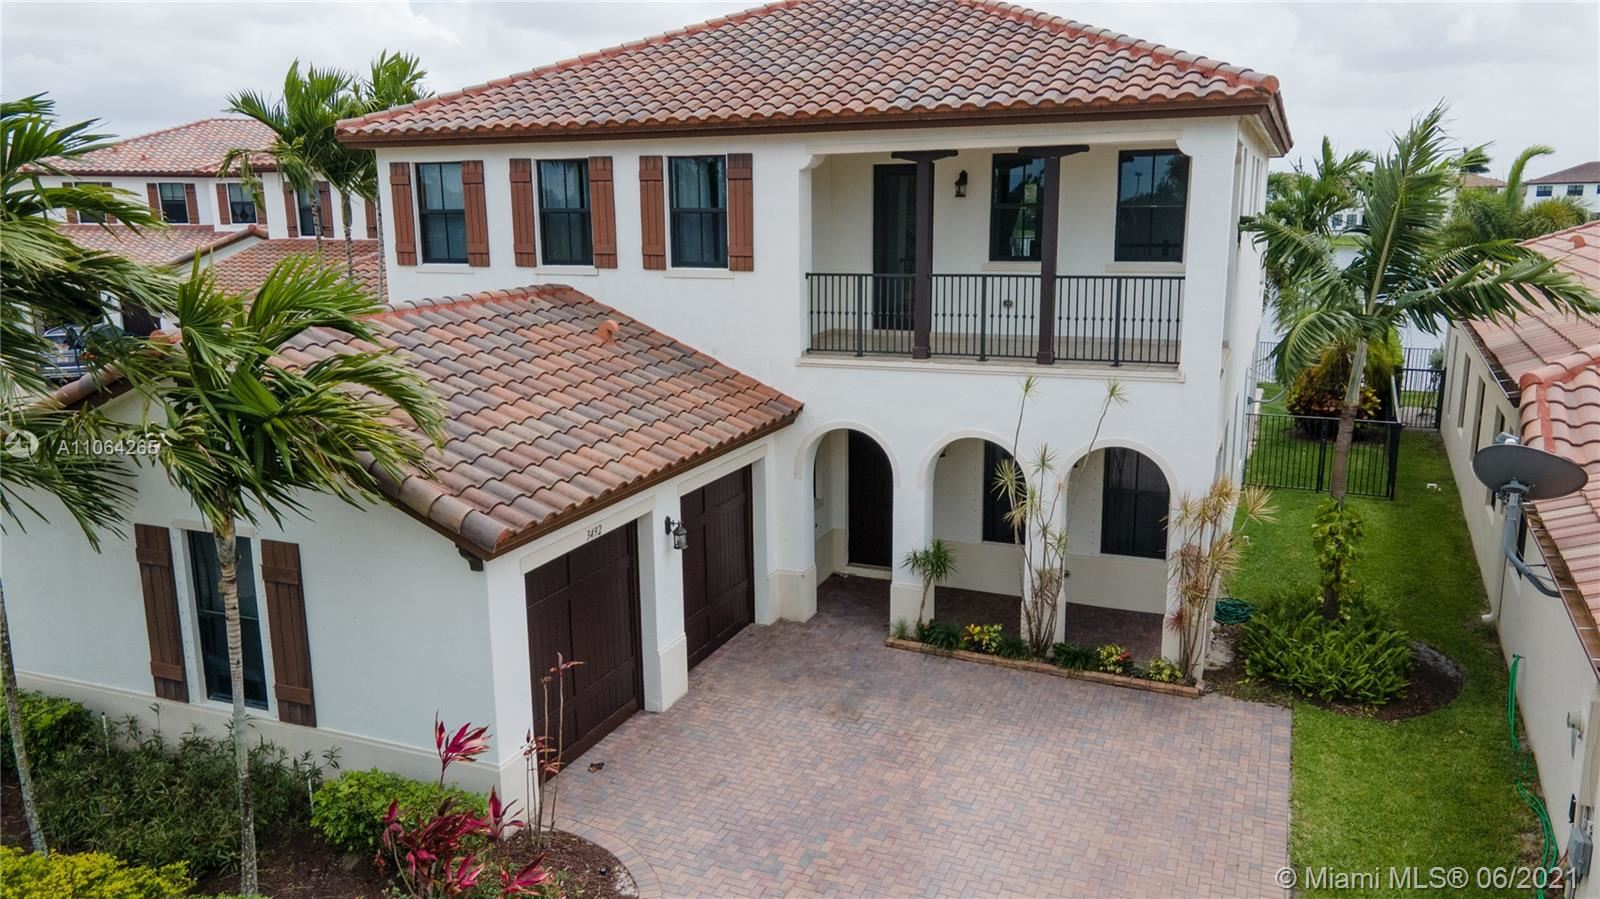 3492 NW 82nd Dr, Cooper City, FL 33024 - #: A11064265